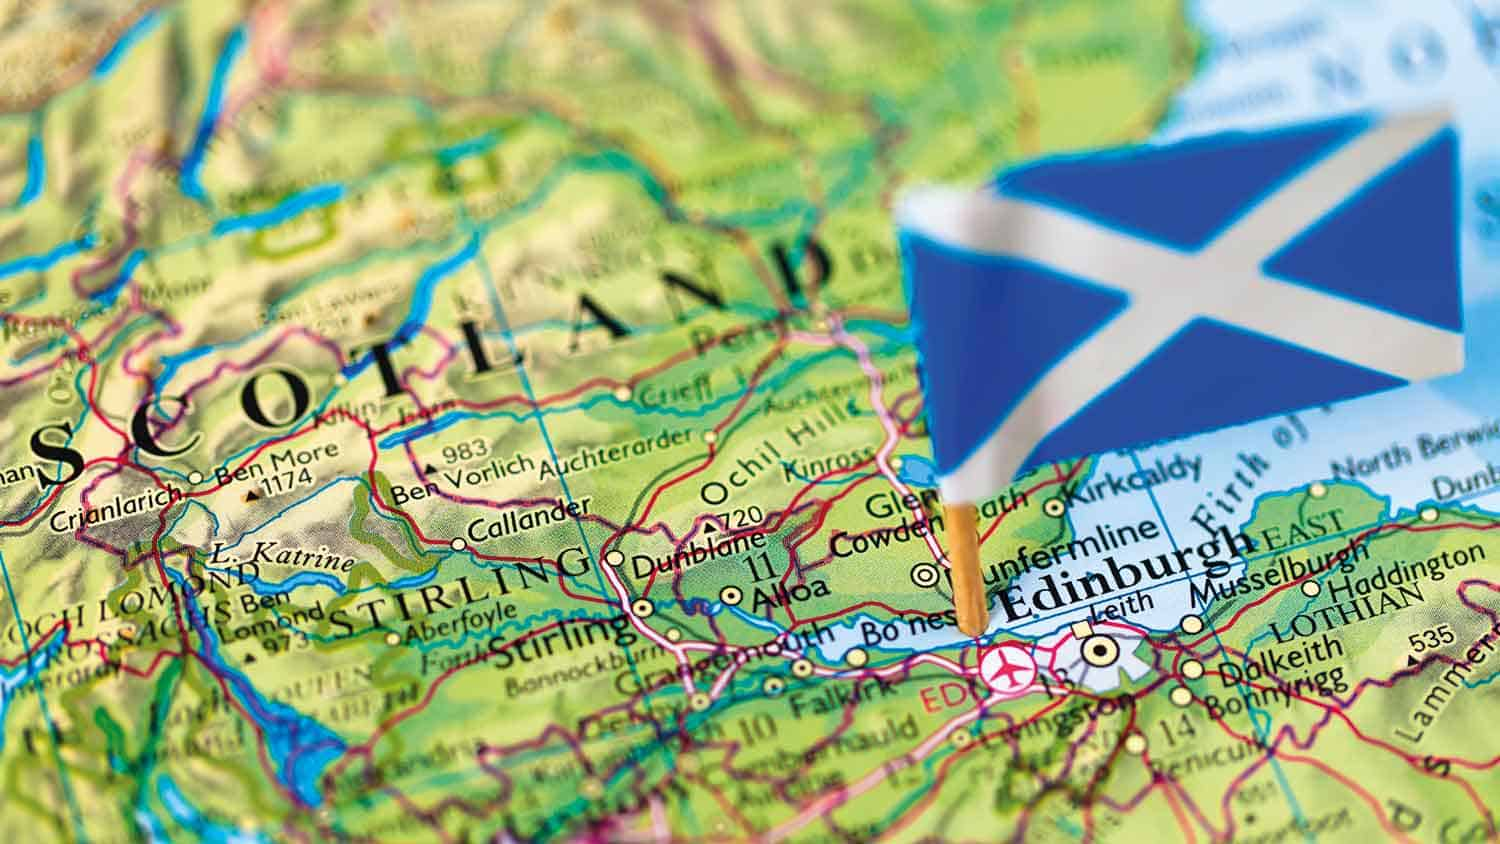 Scotland flag on a small wooden stick poked into Edinburgh on a map of Scotland